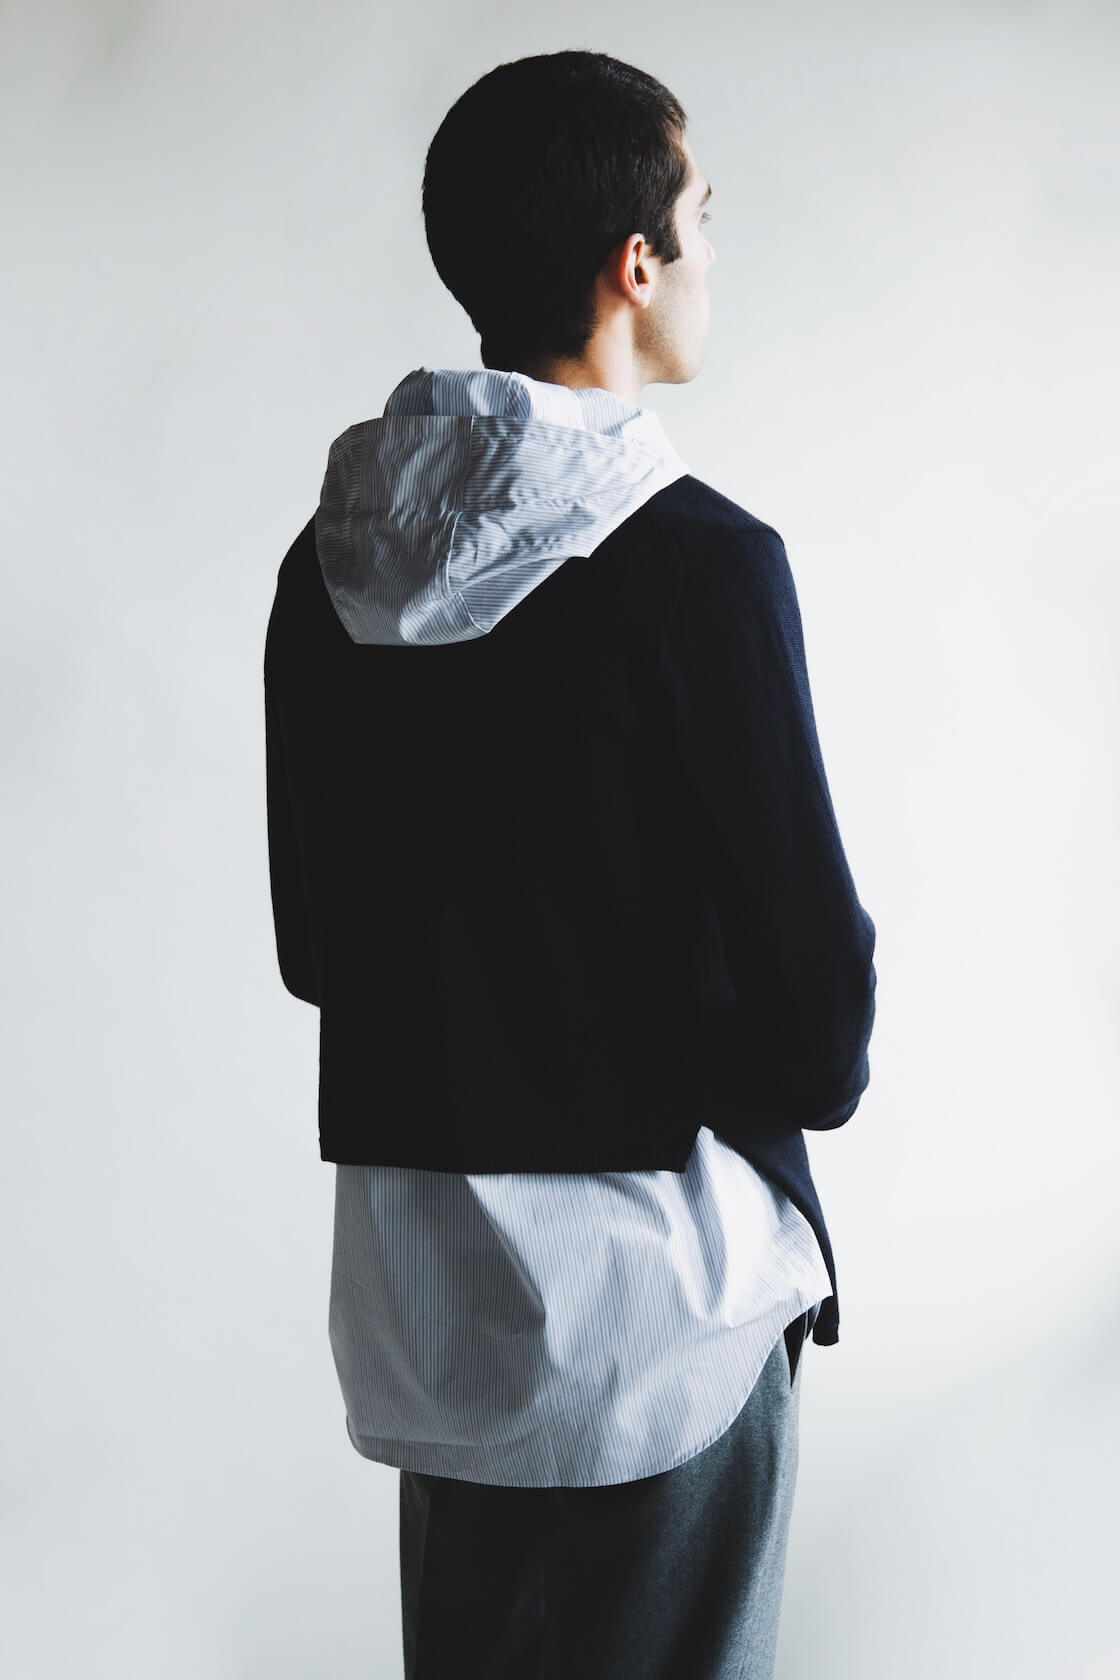 Comme des garcons shirt fully fashioned knit gauge 10 wool sweater and yarn dyed cotton poplin hood shirt, beams plus ivy flannel trousers on body